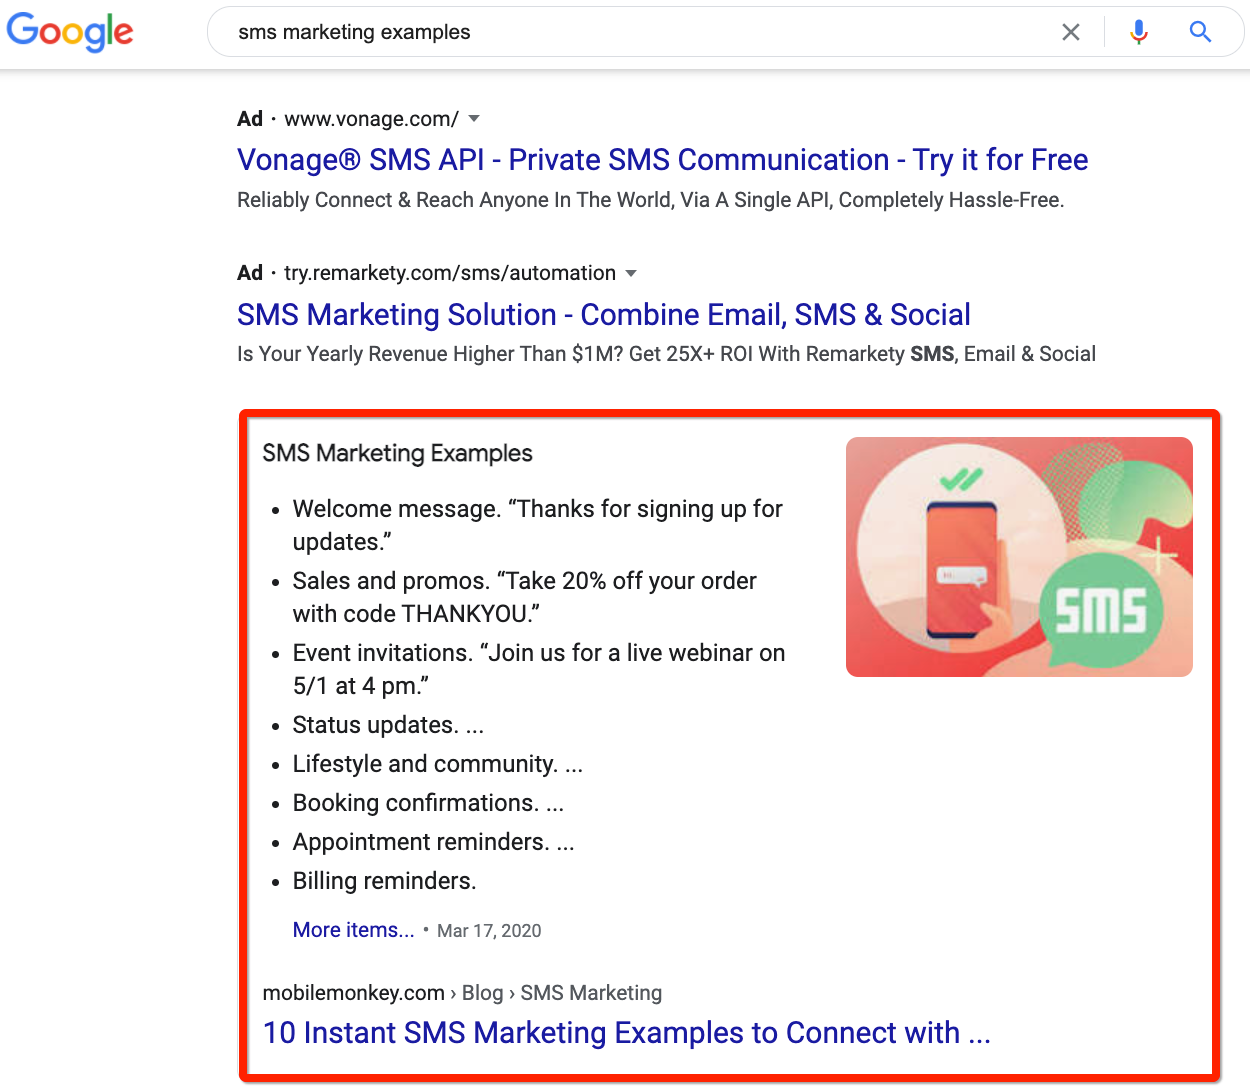 Snippet search result for SMS marketing examples